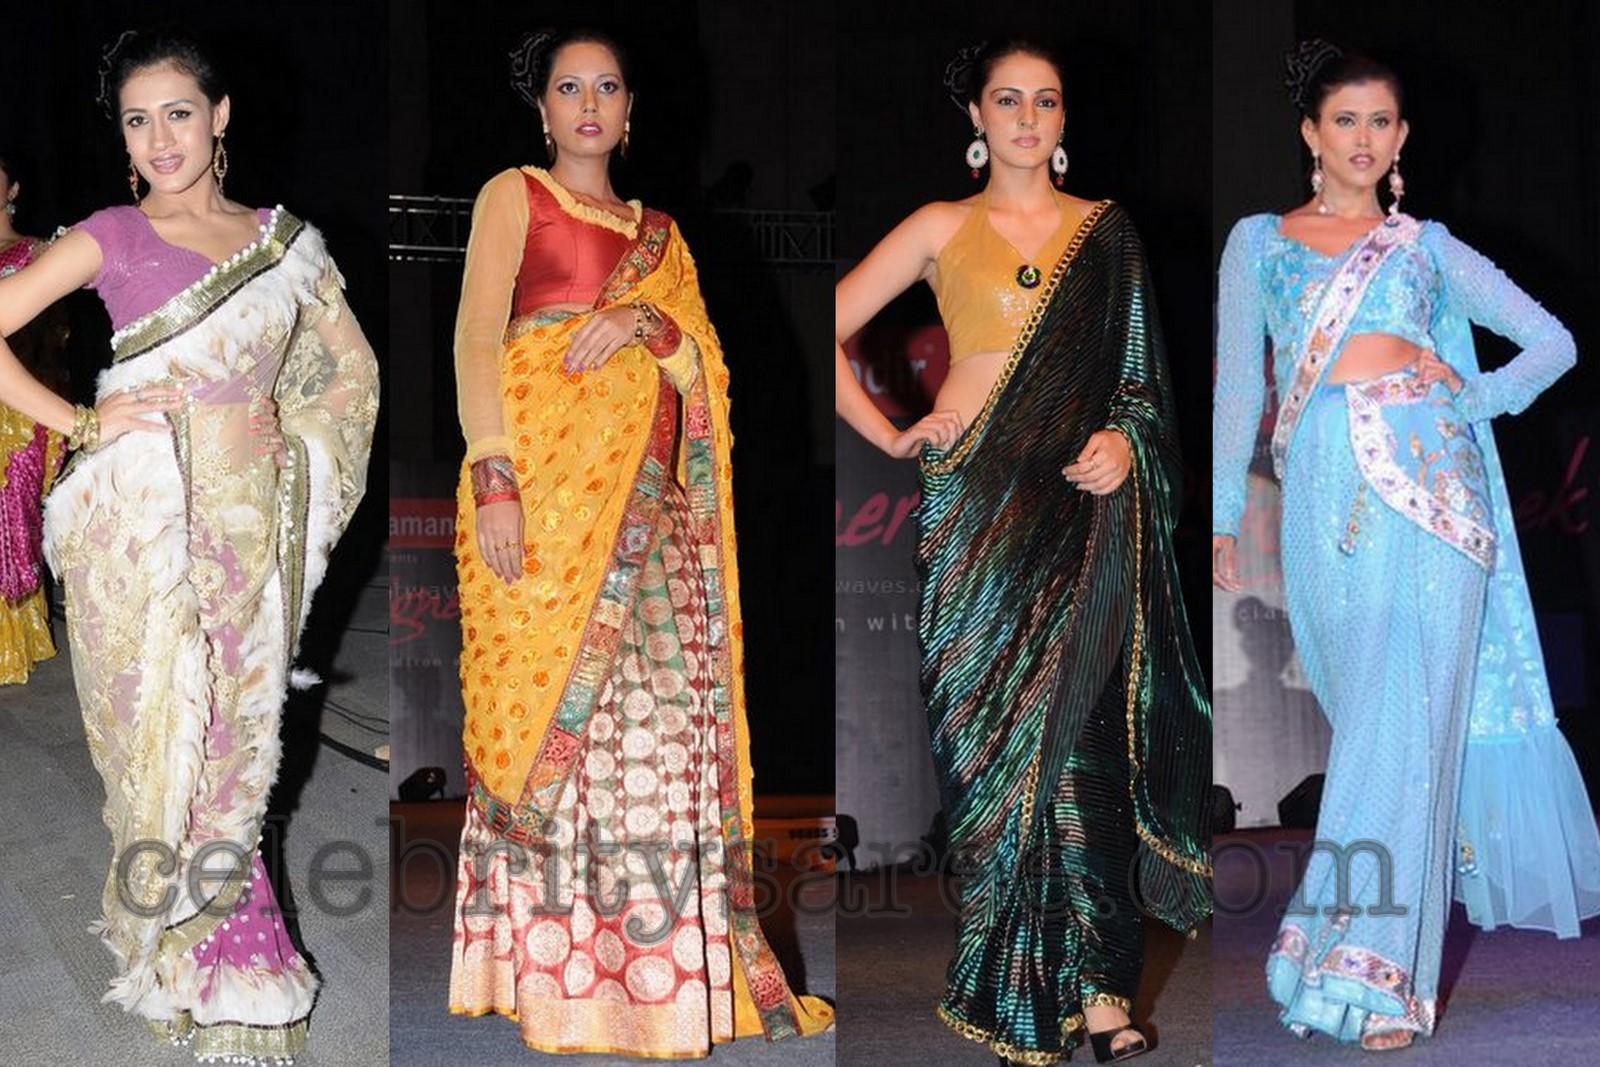 Half Saree Designers in Hyderabad http://www.celebritysaree.com/2012/05/designer-sarees-at-hyd-fashion-show.html